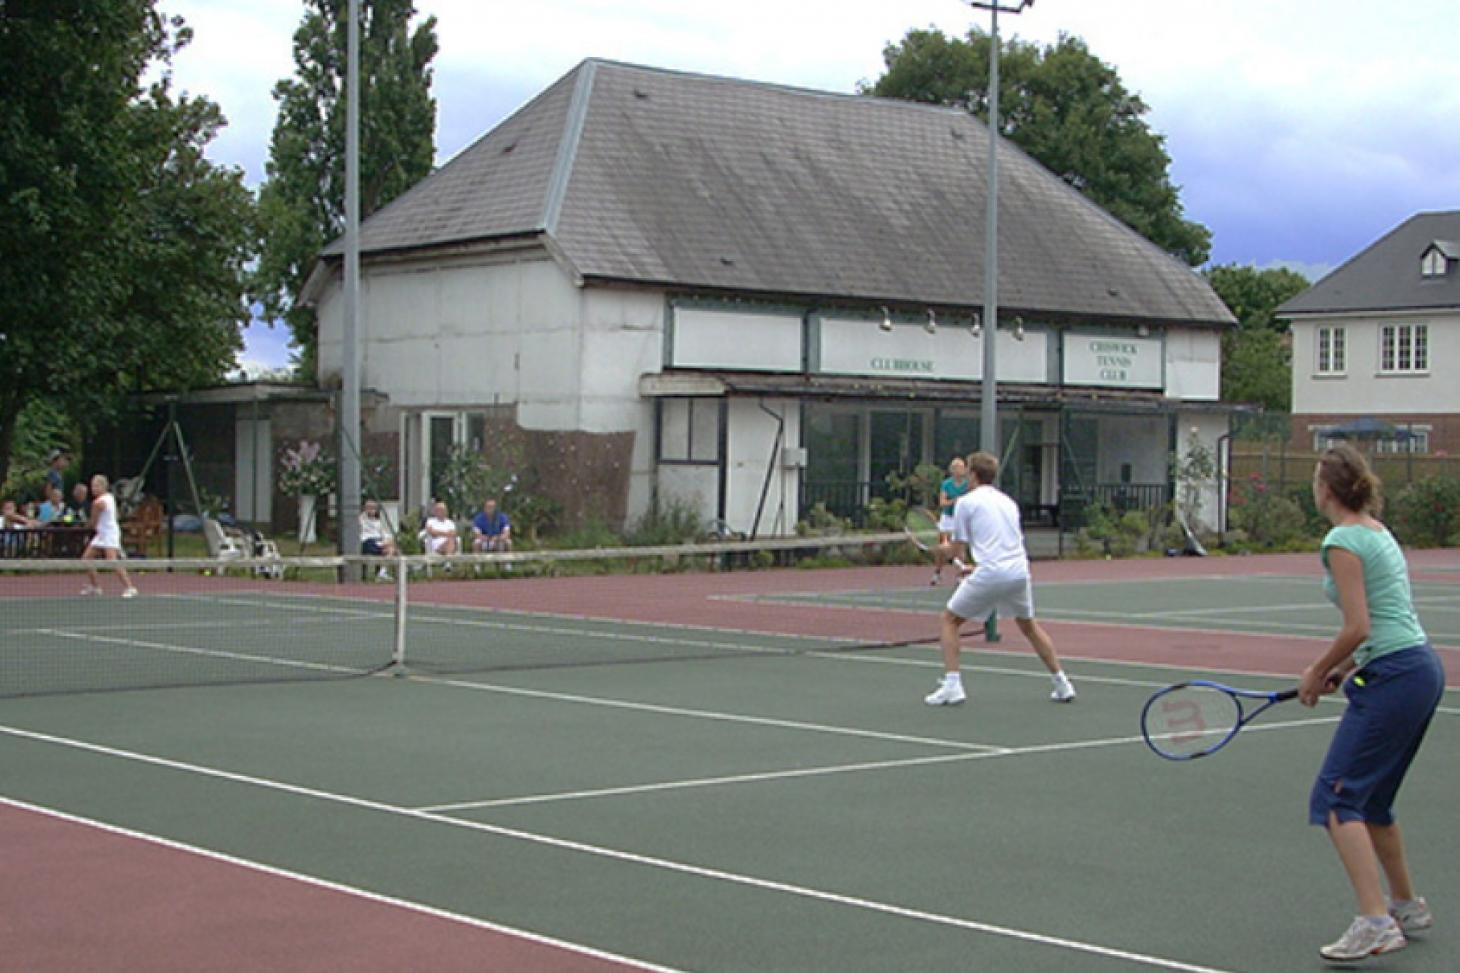 Chiswick Bridge & Tennis Club Outdoor | Astroturf tennis court